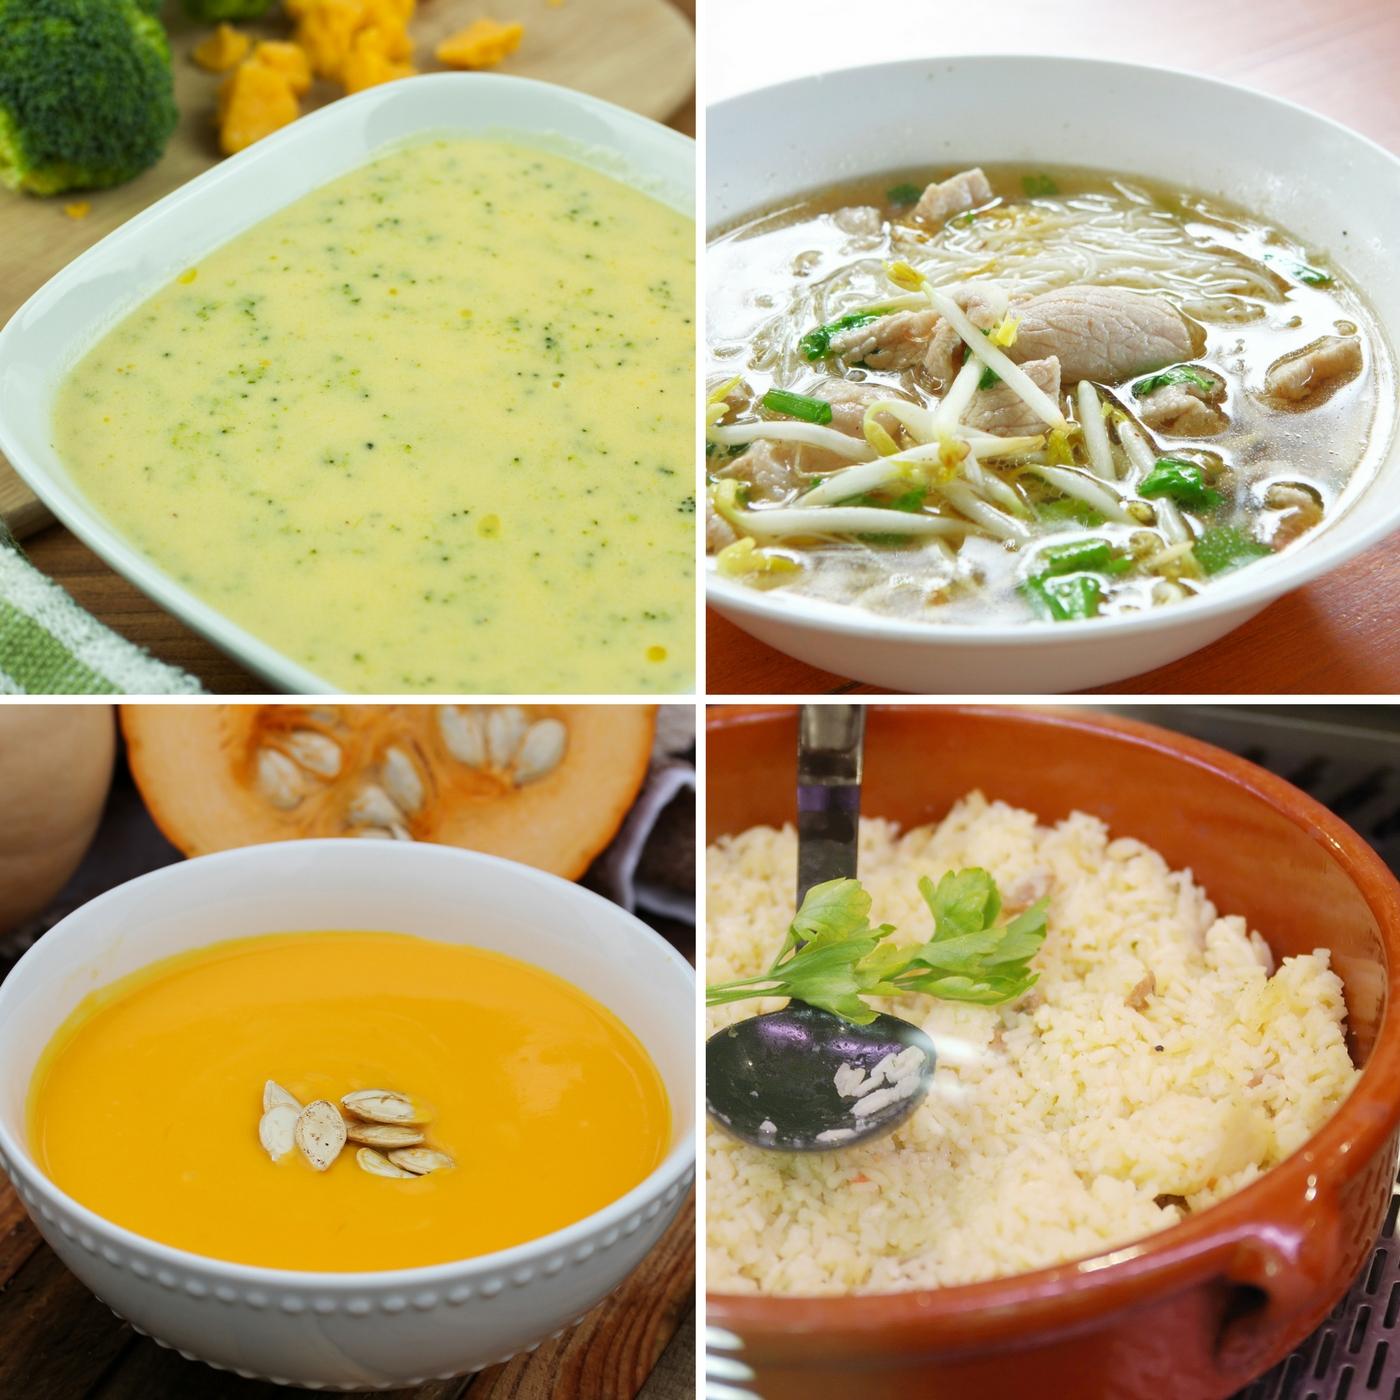 Homemade Chicken Broth can be used to create soups like Butternut Squash, Broccoli, Chicken Noodle and even rice